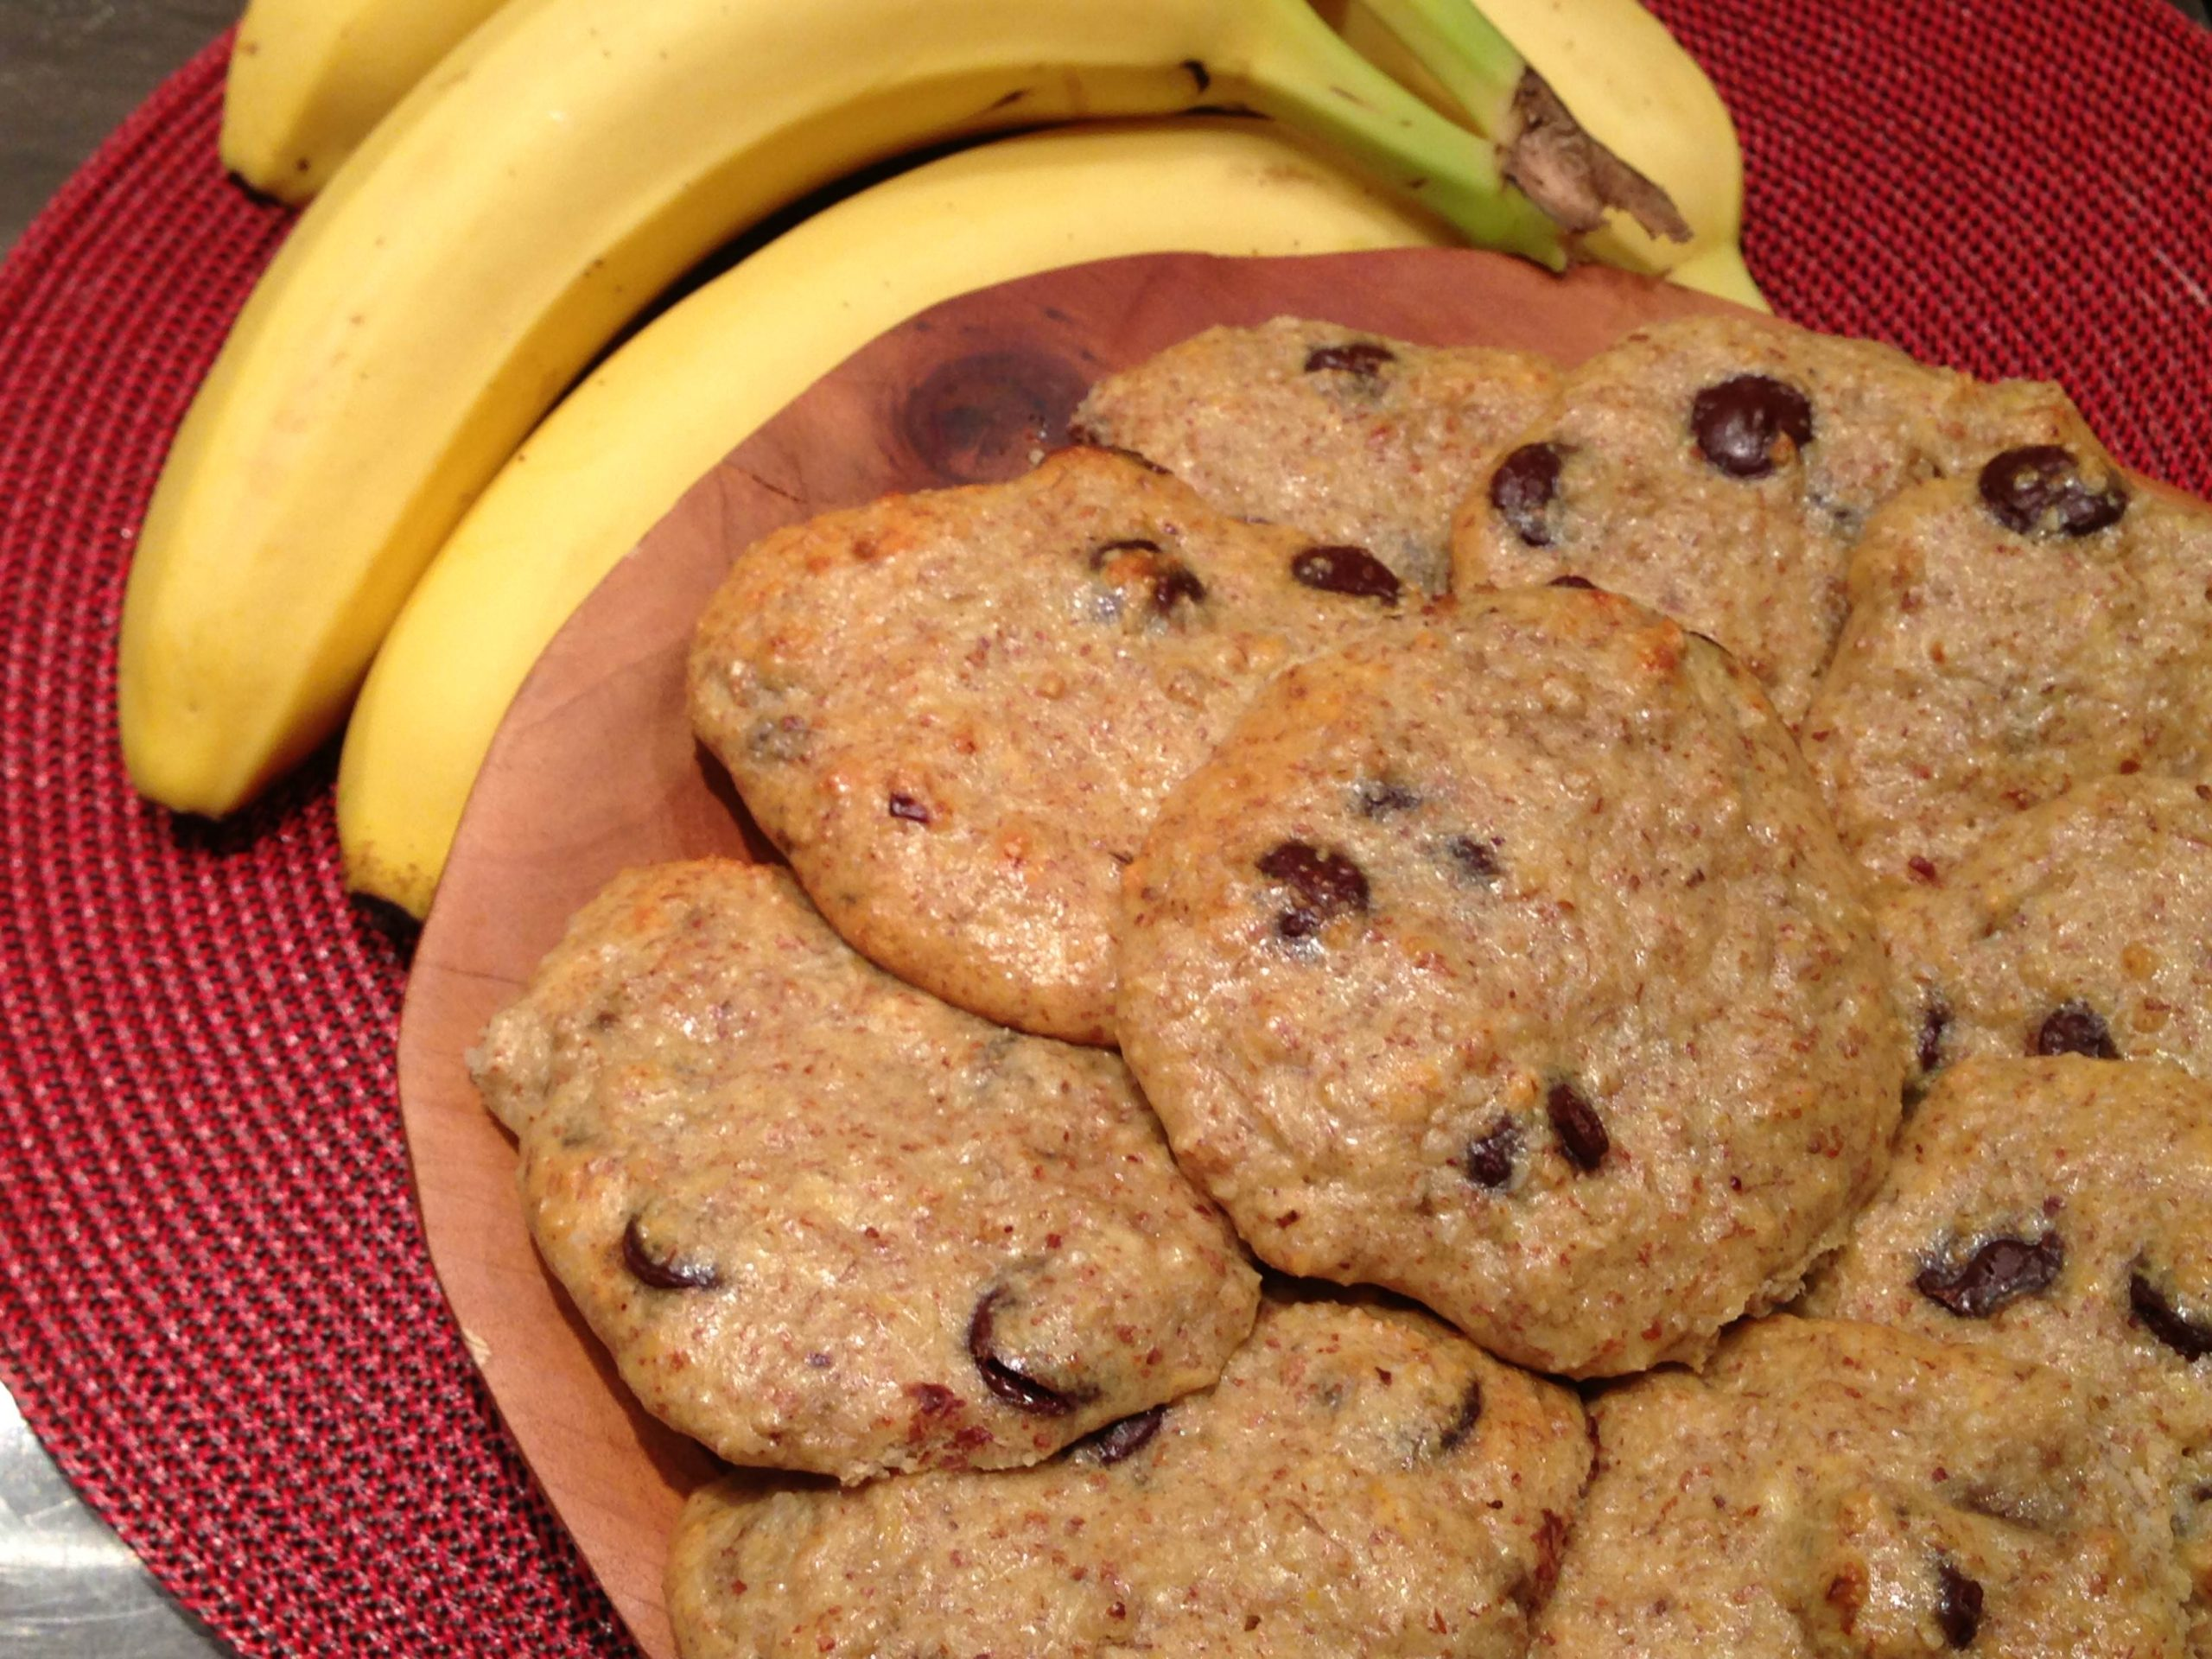 Grain Free Chocolate Chip Banana Protein Cookies